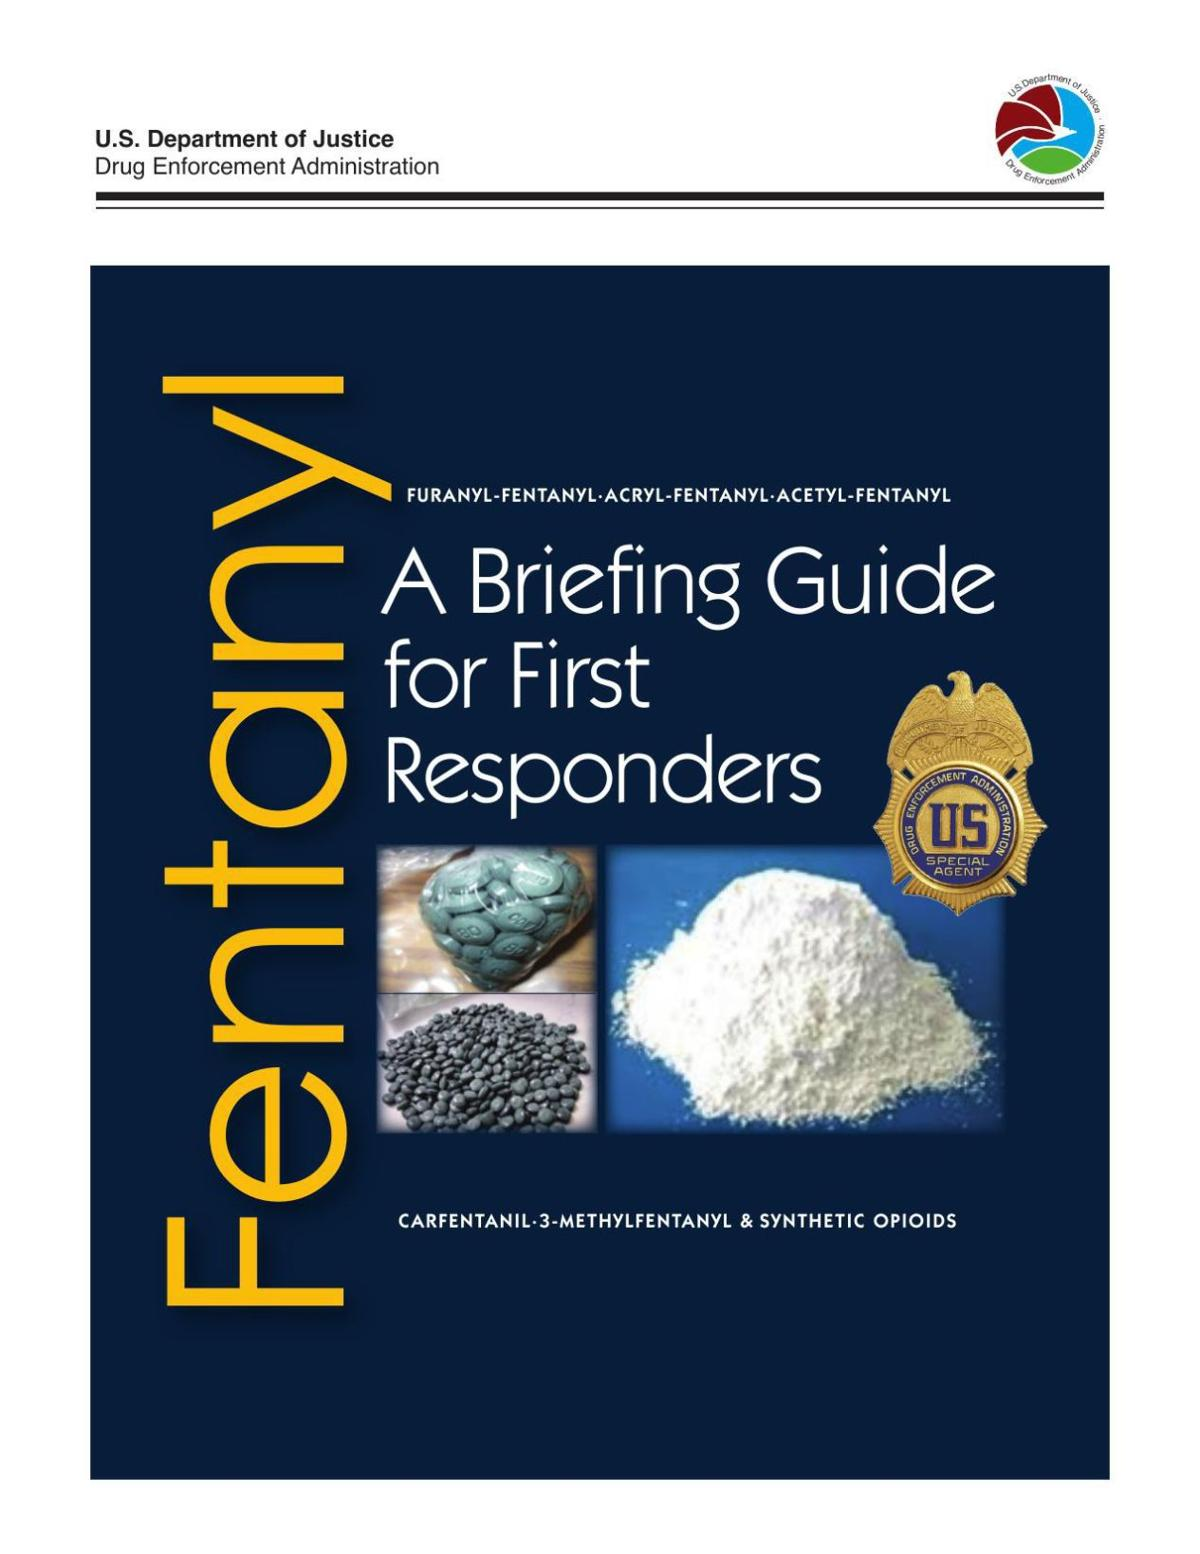 Fentanyl Briefing Guide for First Responders